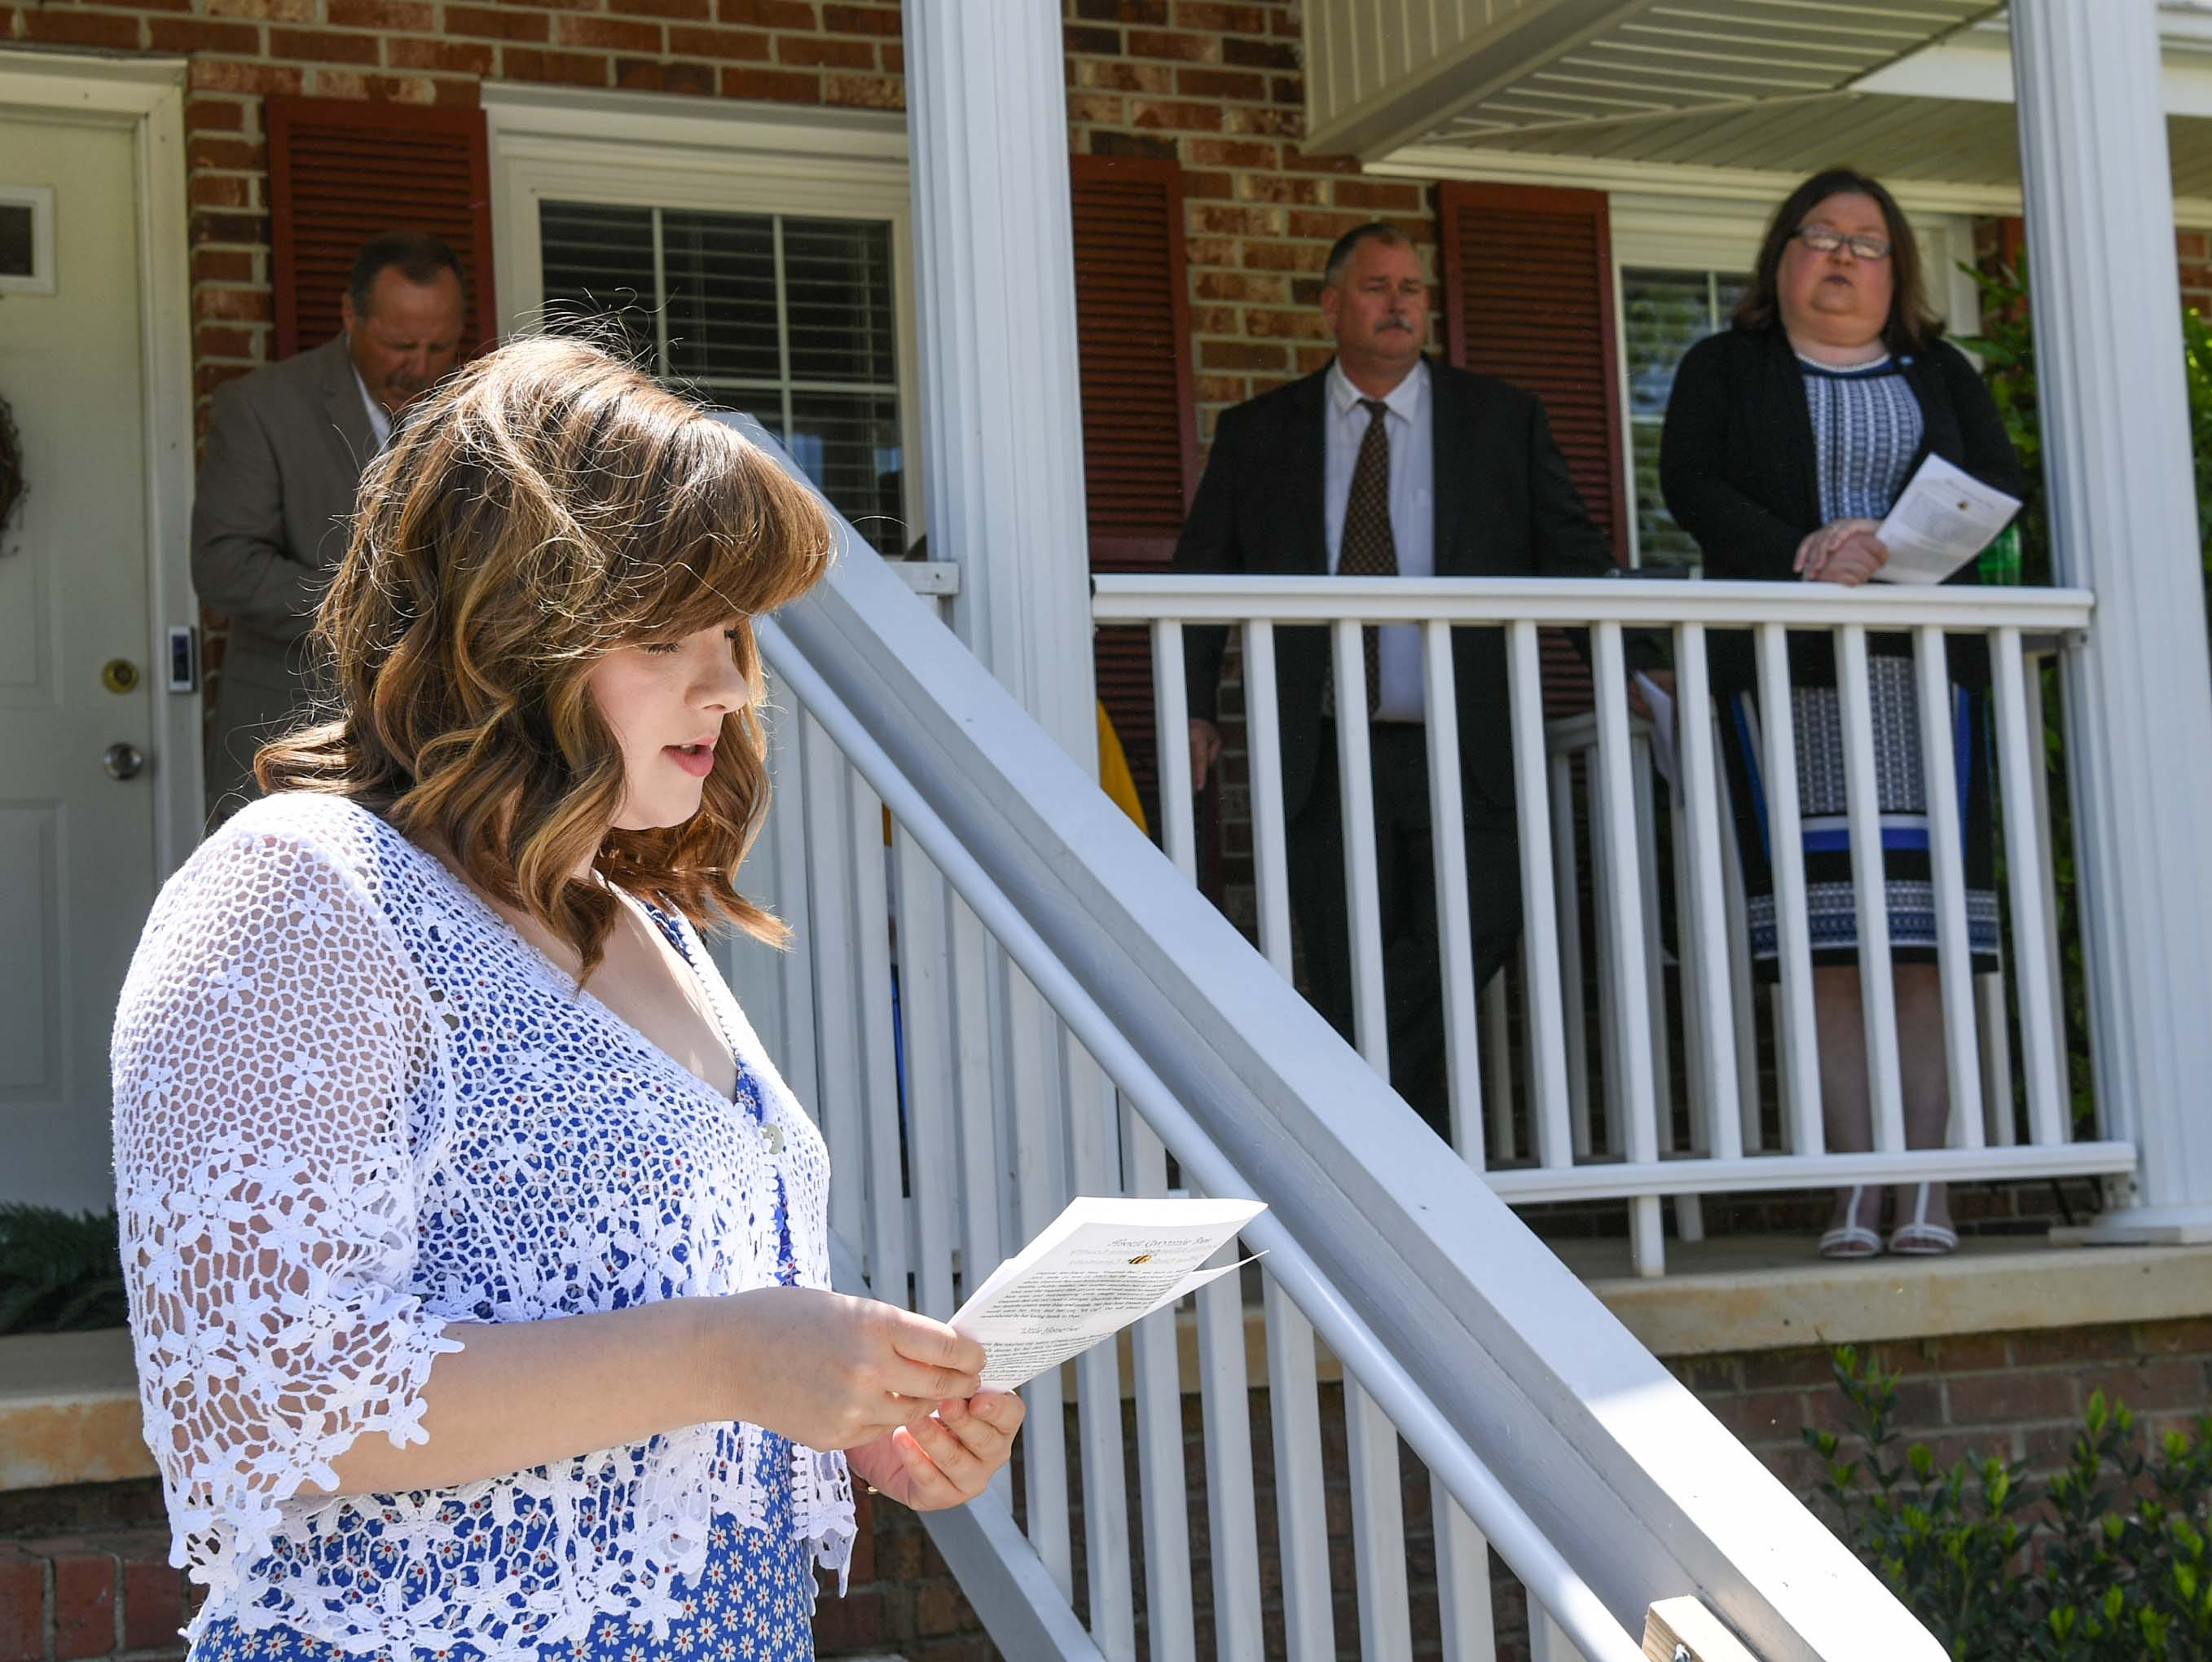 "Emily Wyndham, Foothills Alliance forensic interviewer, offers a poem during an office dedication of the Foothills Alliance Oconee County Gwynnie Bee House in Walhalla Friday. Foothills Alliance, who with partners provides education, advocacy, and treatment services to prevent sexual assault trauma and child abuse services in Anderson and Oconee Counties, branched out from their Anderson office with an office in Walhalla last August. Gwynne Ann-Marie Hess, ""Gwynnie Bee"", died in 2017 from child abuse, and the office was renamed after her Friday in the presence of family, law enforcement, Sen. Thomas Alexander, Oconee County Sheriff Michael Crenshaw, and Tenth Circuit Solicitor David Wagner."